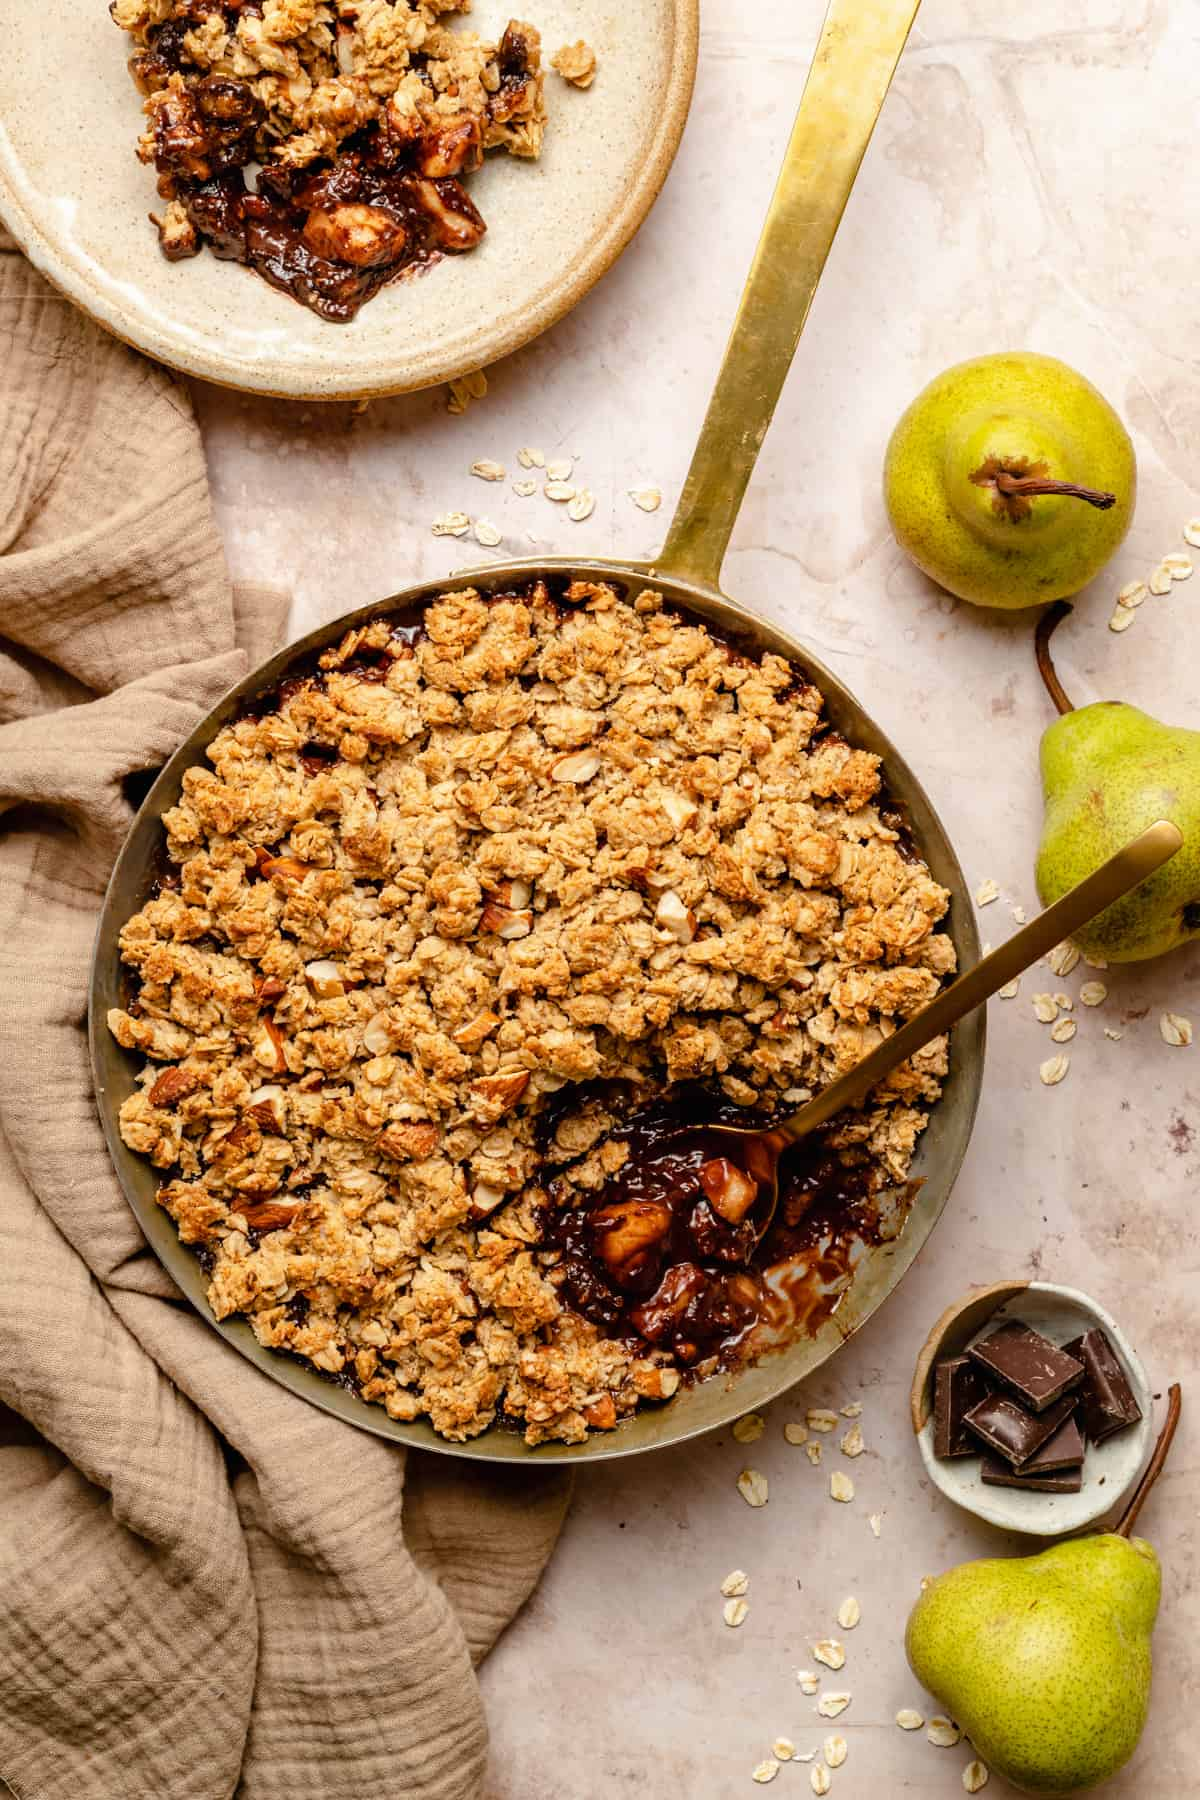 A copper pan with pear and chocolate crumble with a serving taken out of it and spoon showing the insides. Surrounded with pears, chocolate and oats.